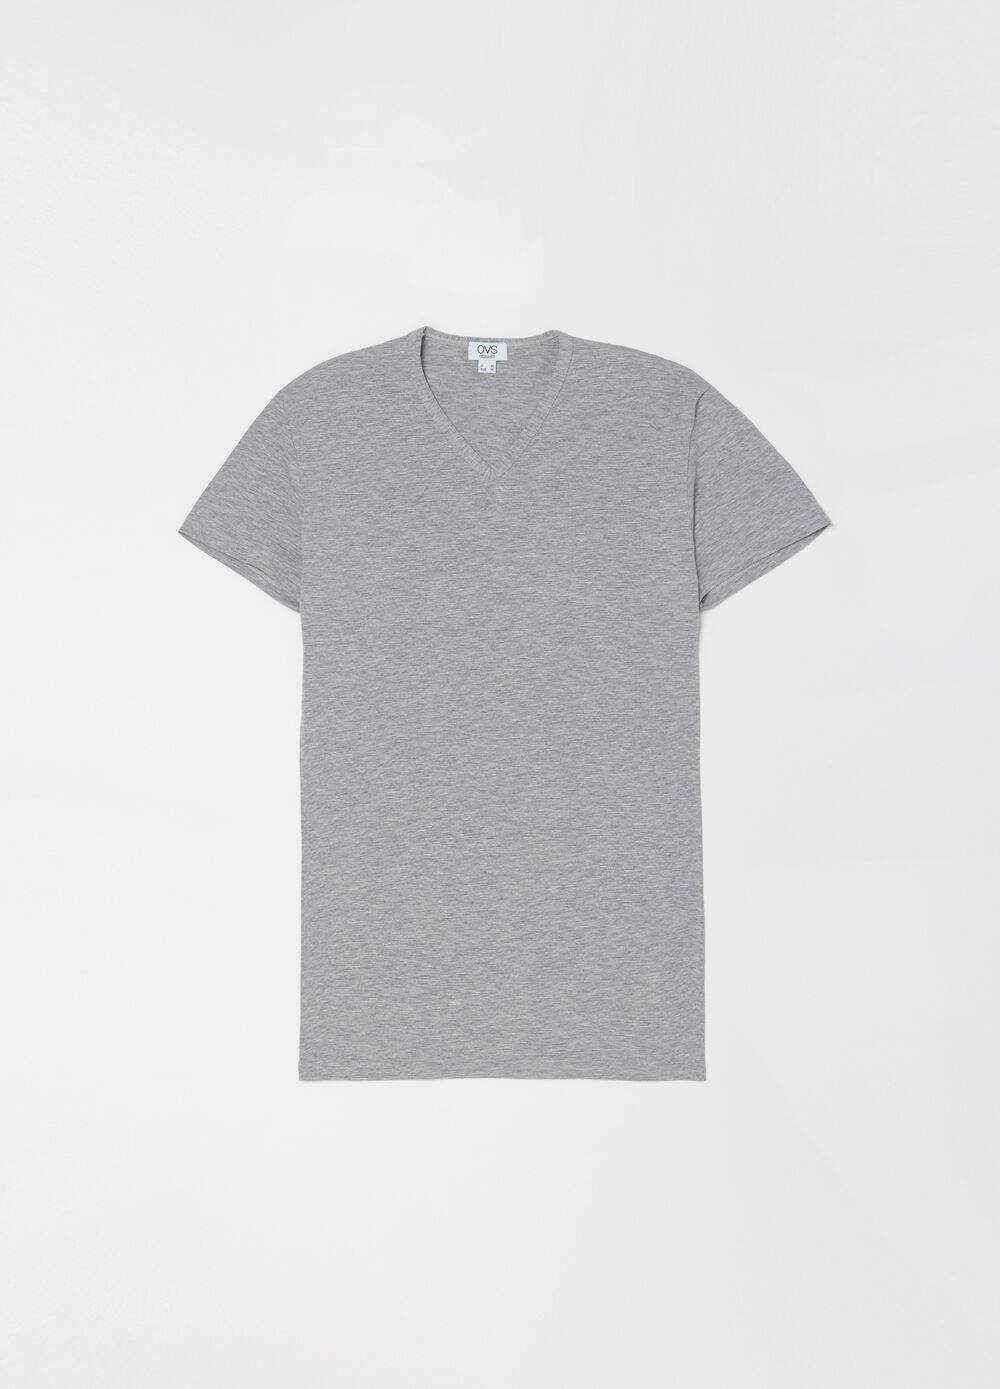 V-neck stretch cotton undershirt